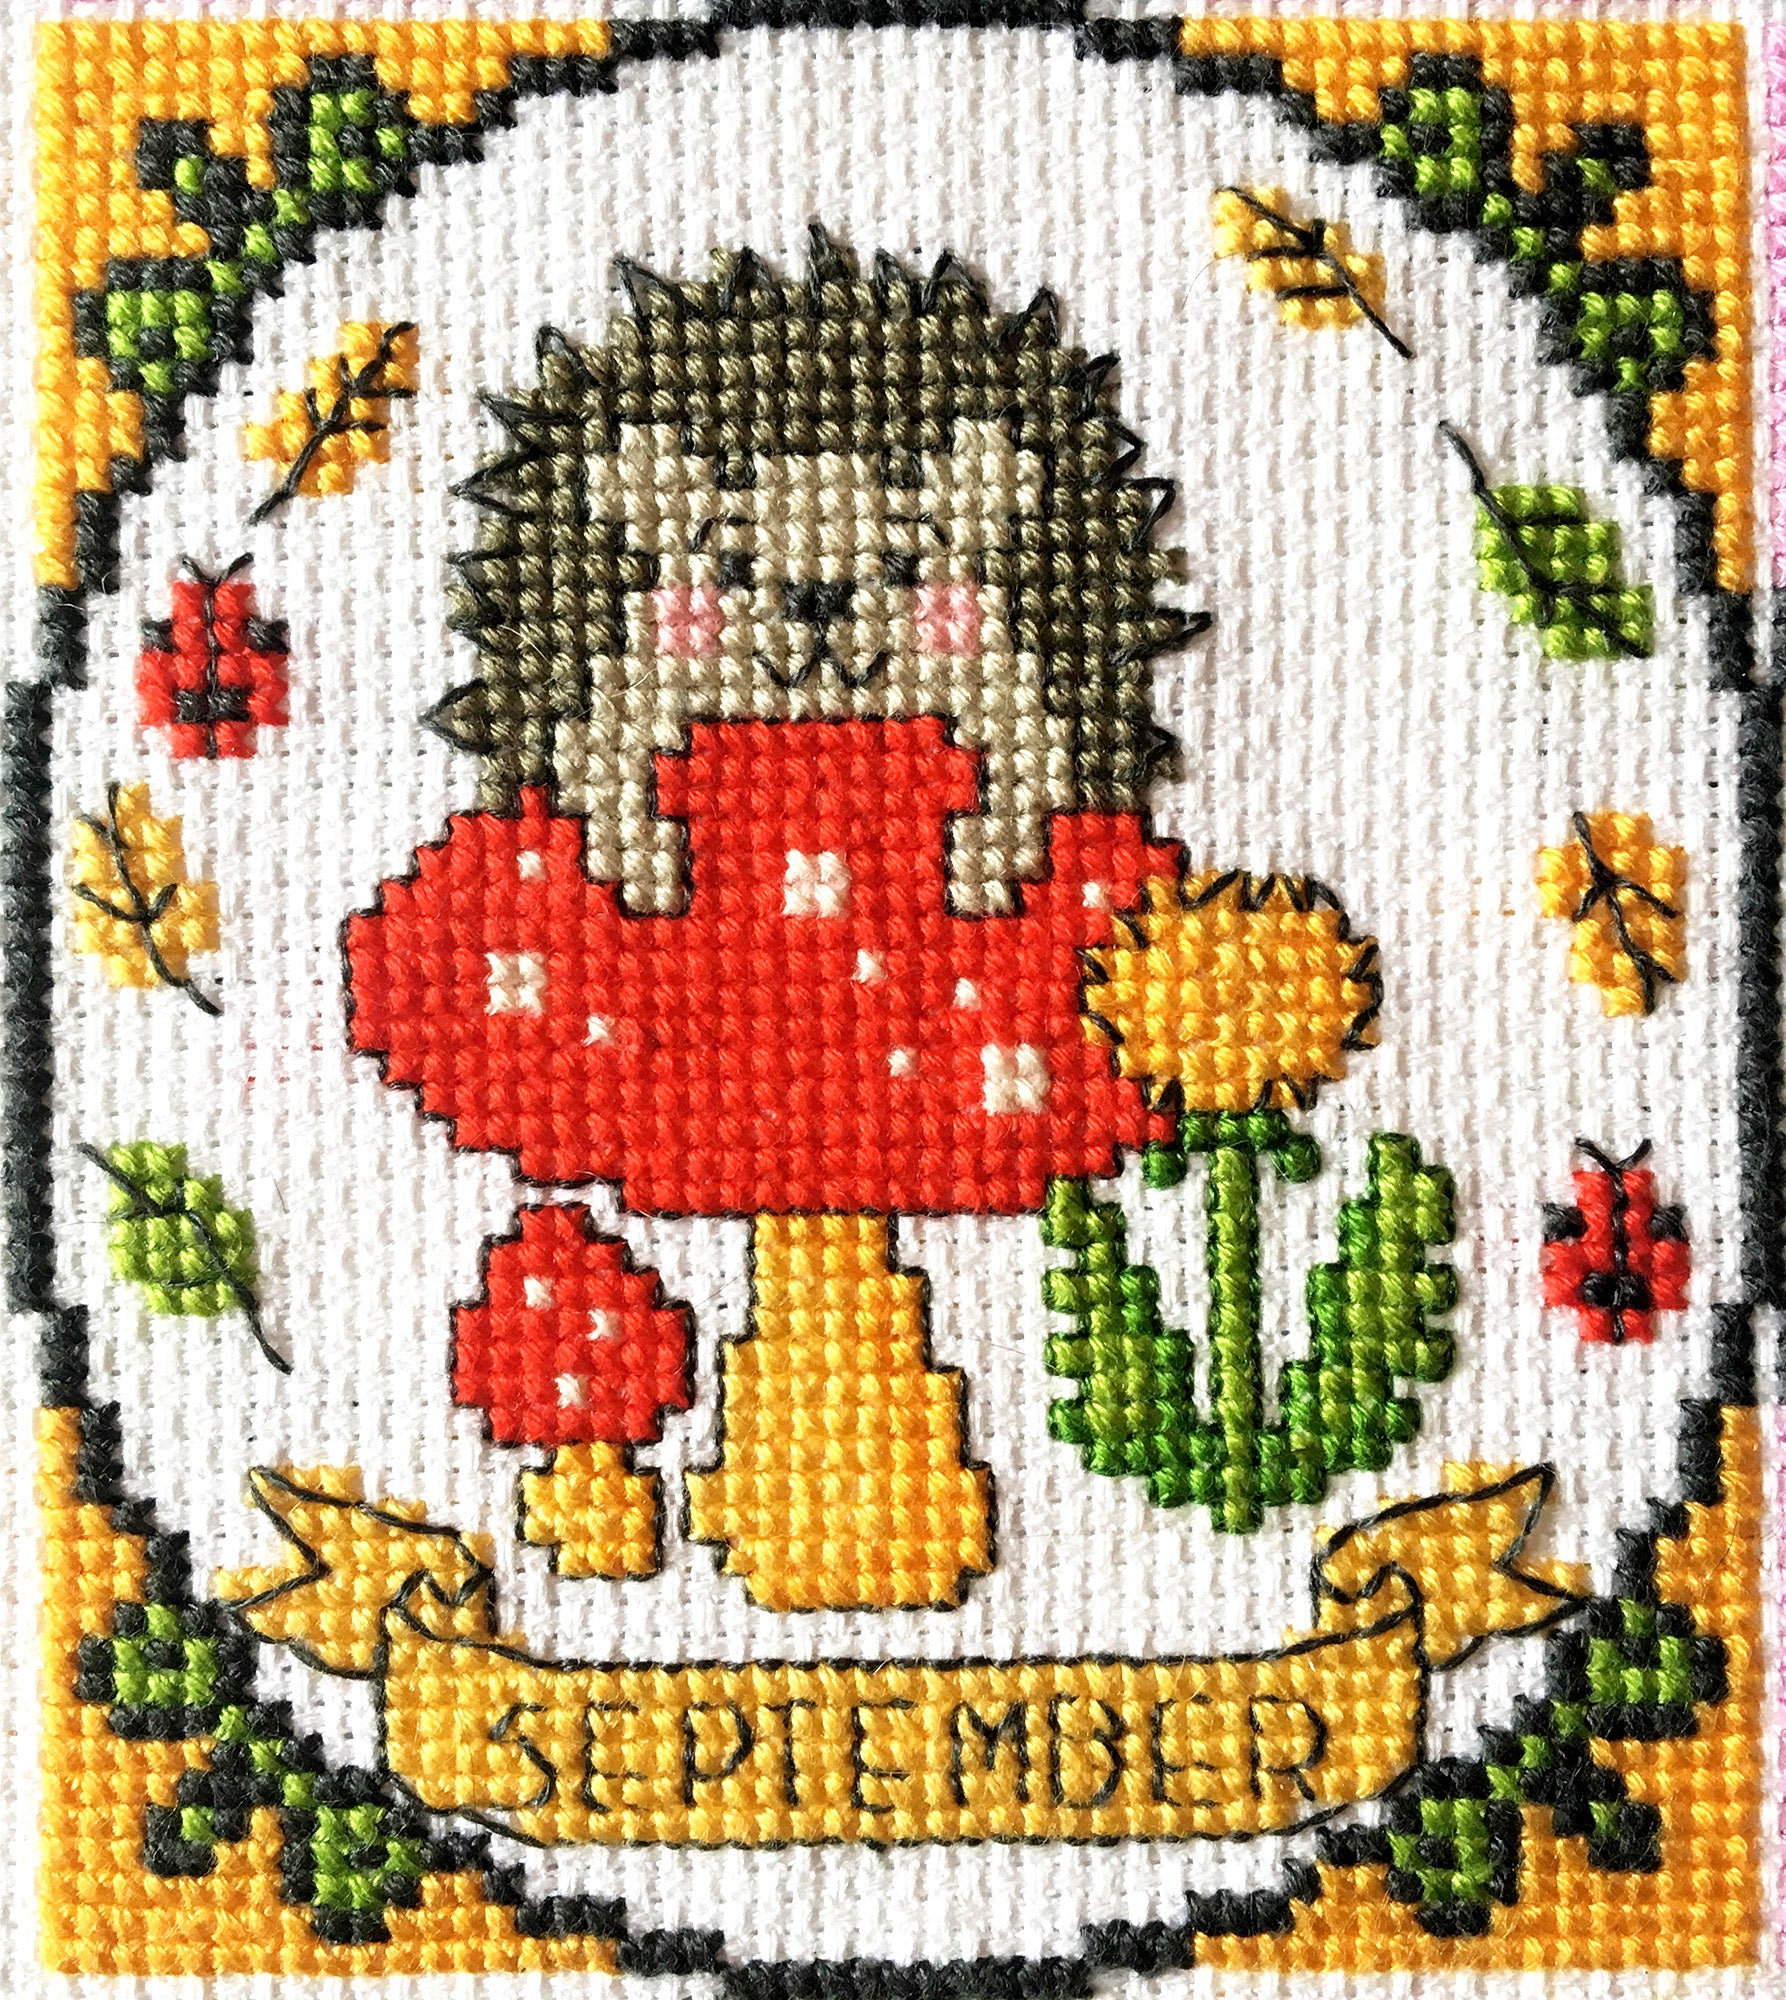 Creative Cross Stitch Design 30